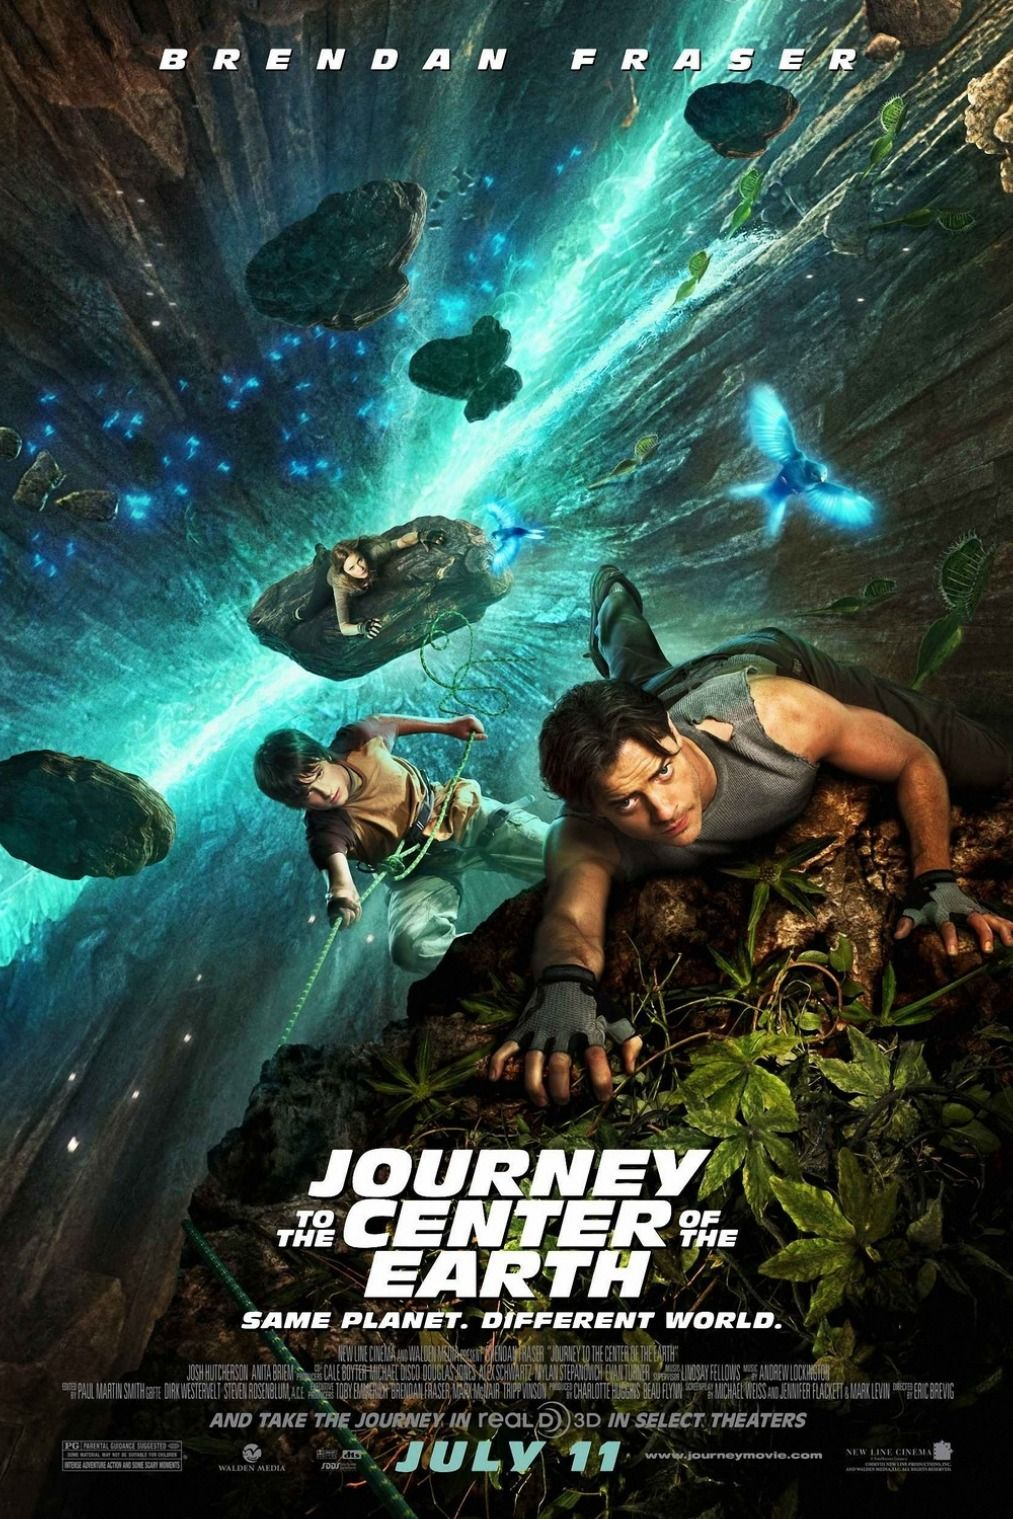 Journey To The Center Of The Earth 2008 Free Download 720p Bluray Full Hd Movie Earth Movie Adventure Movies Family Movies